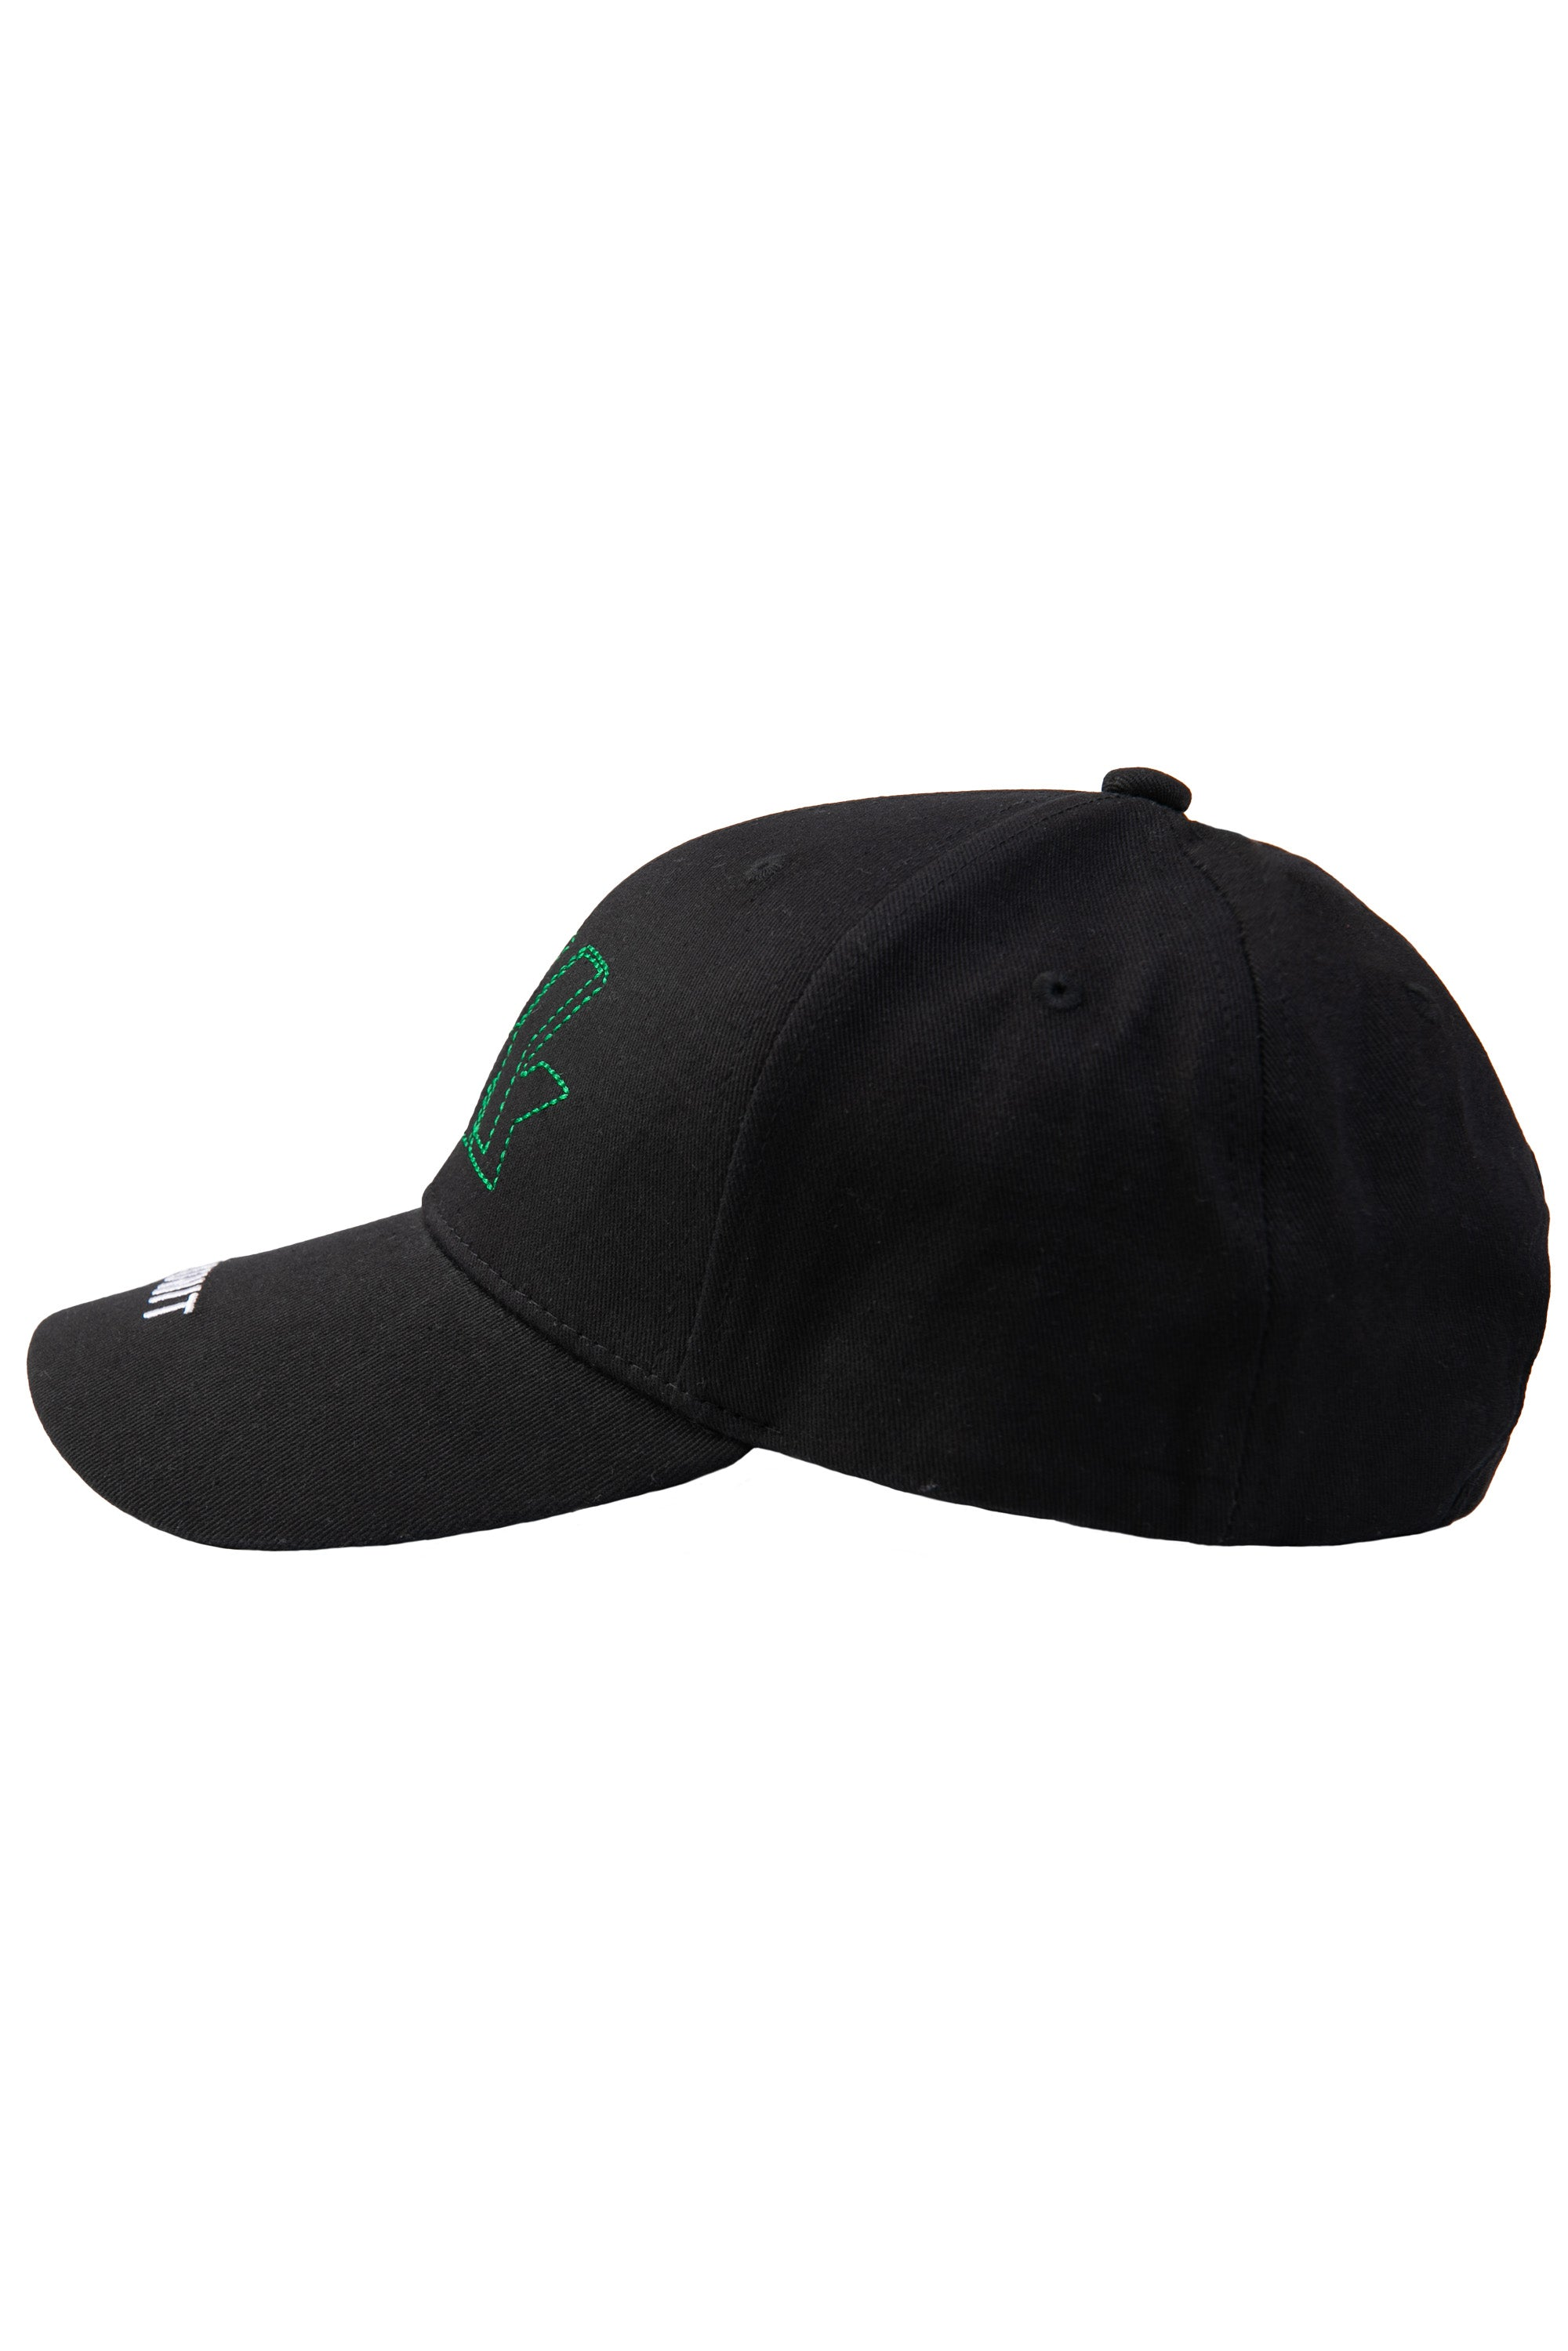 BERLY DAD CAP | BLACK